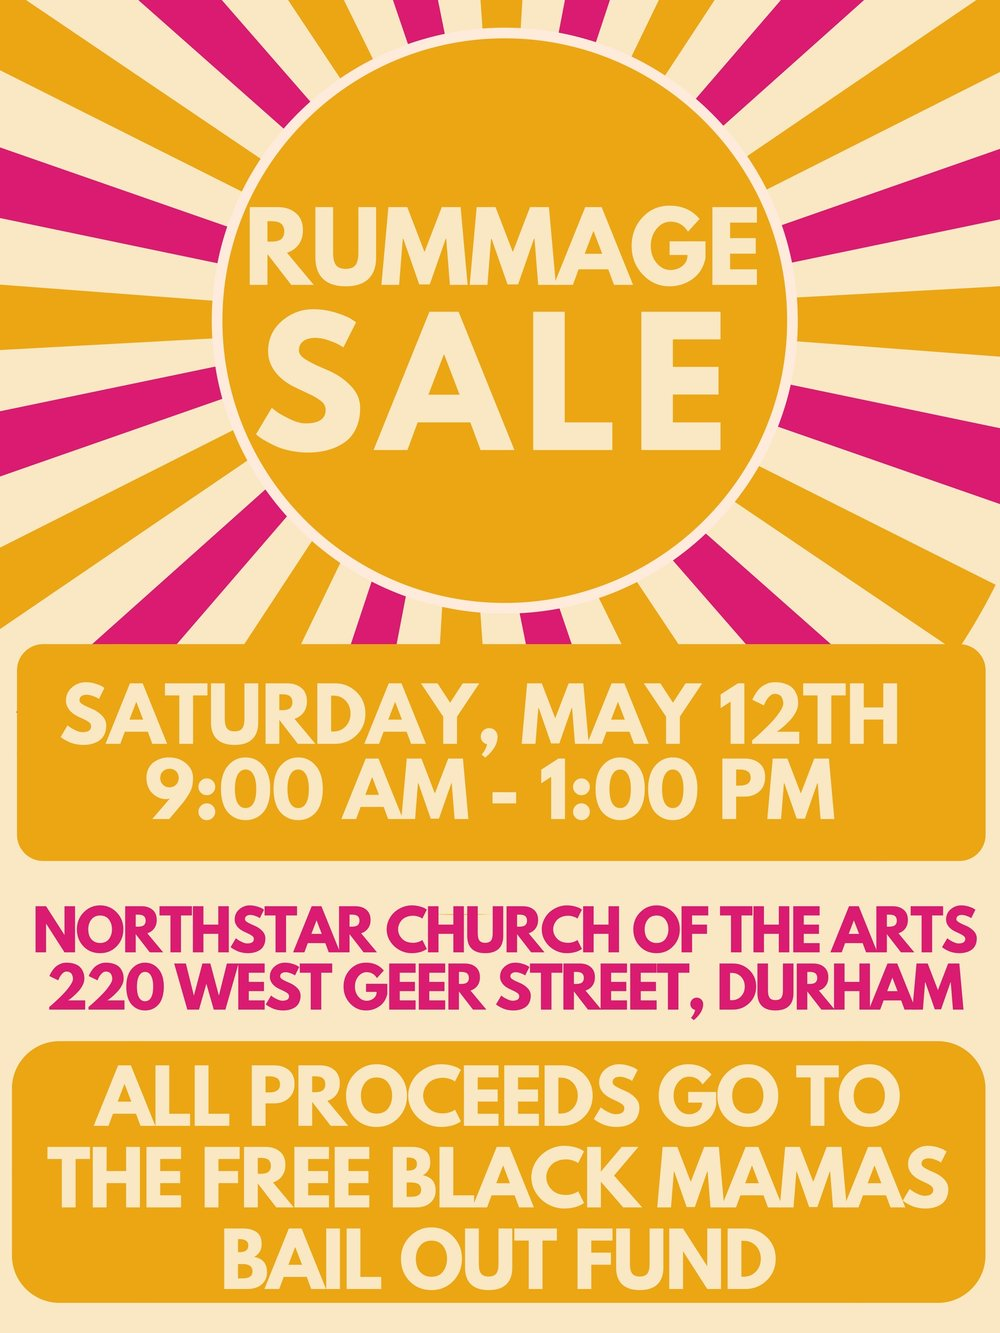 Copy of RUMMAGE SALE BANNER.jpg